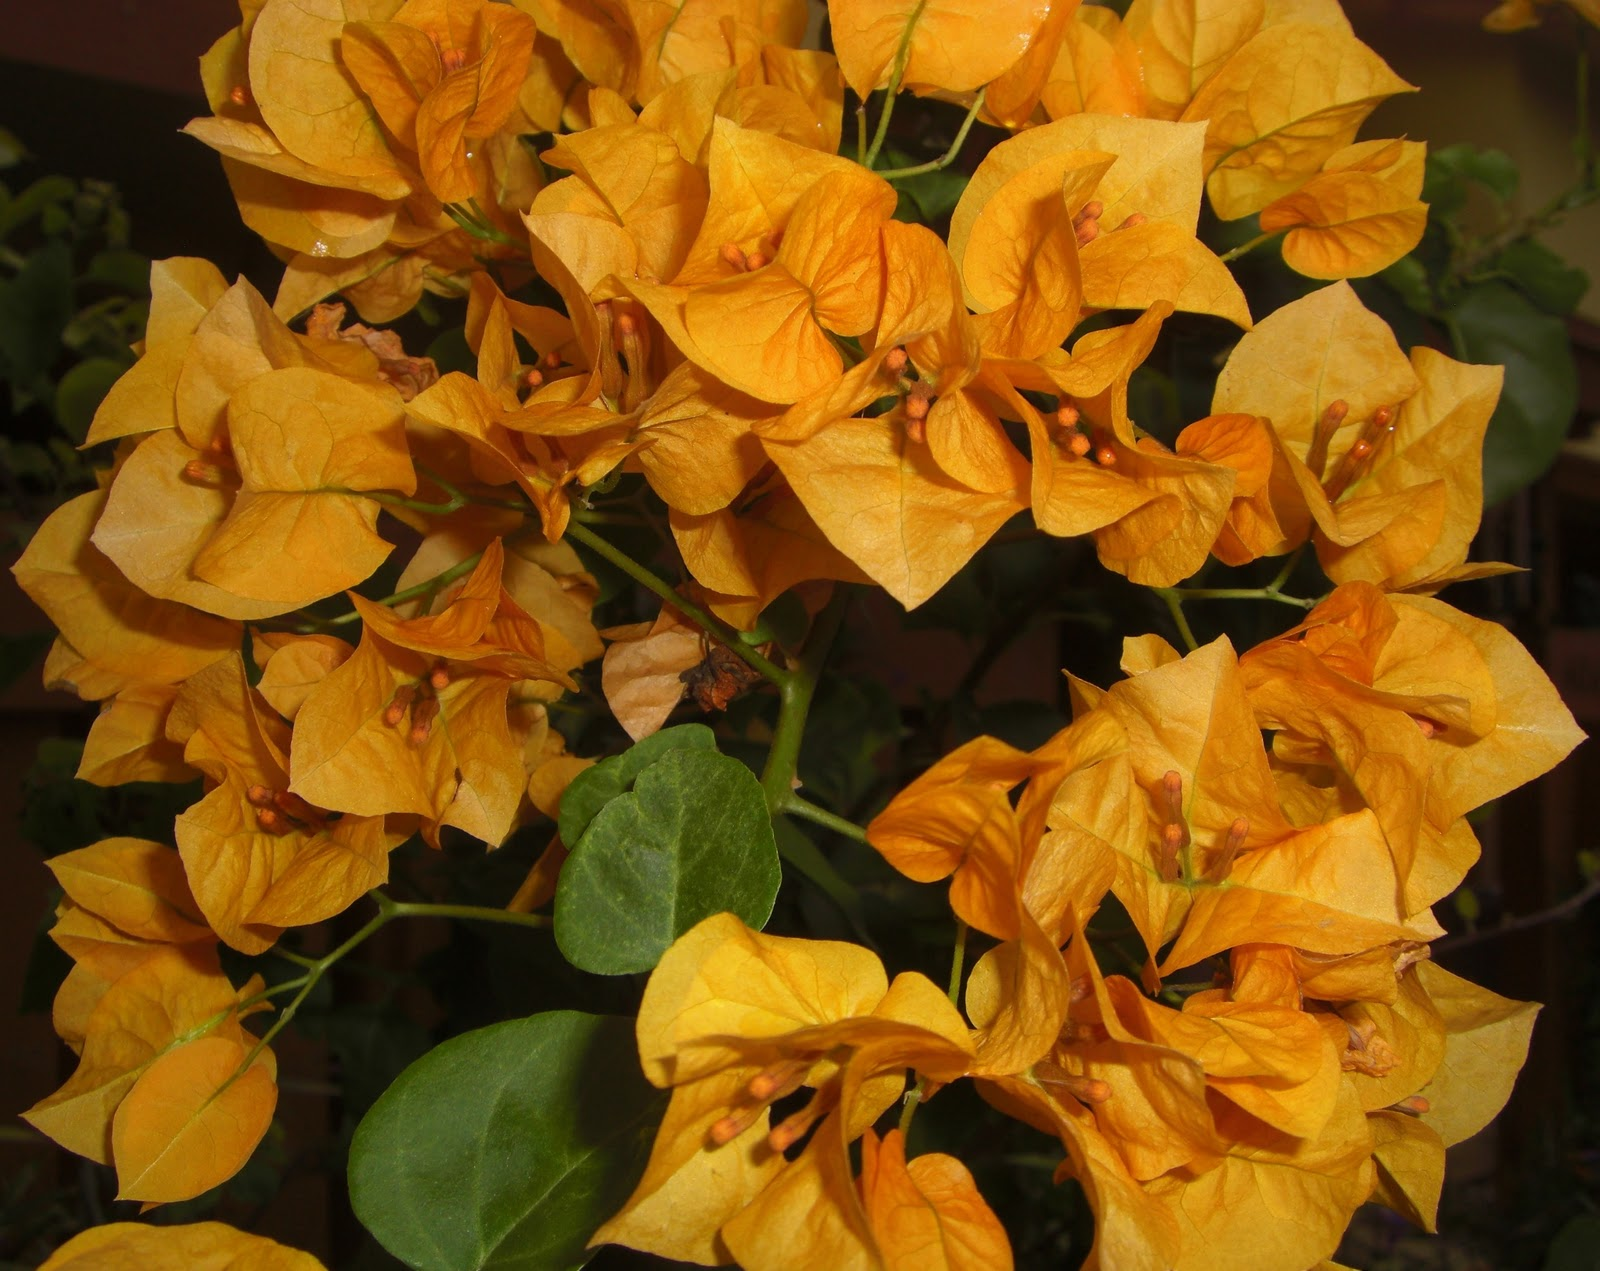 Gardening In South Florida: Yellow Bougainvillea